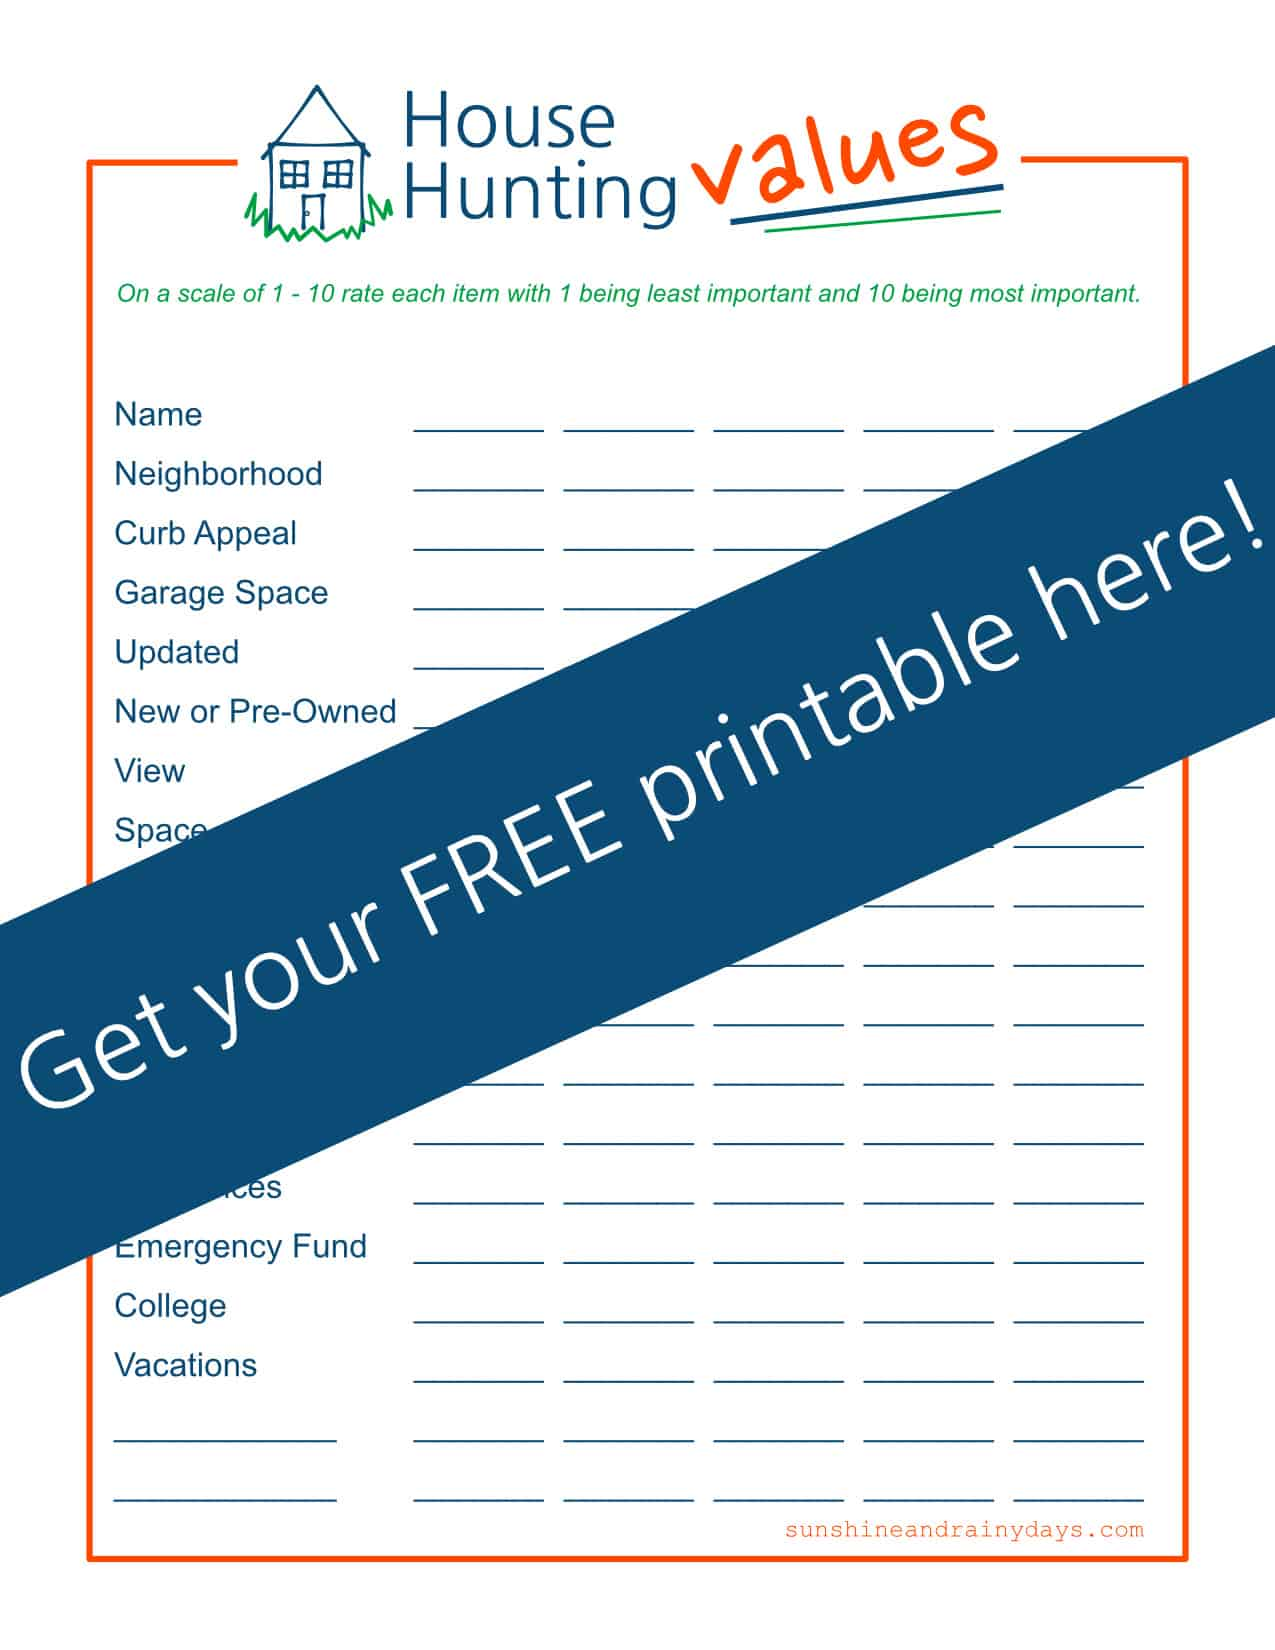 House Hunting Values Get Your Free Printable Here!